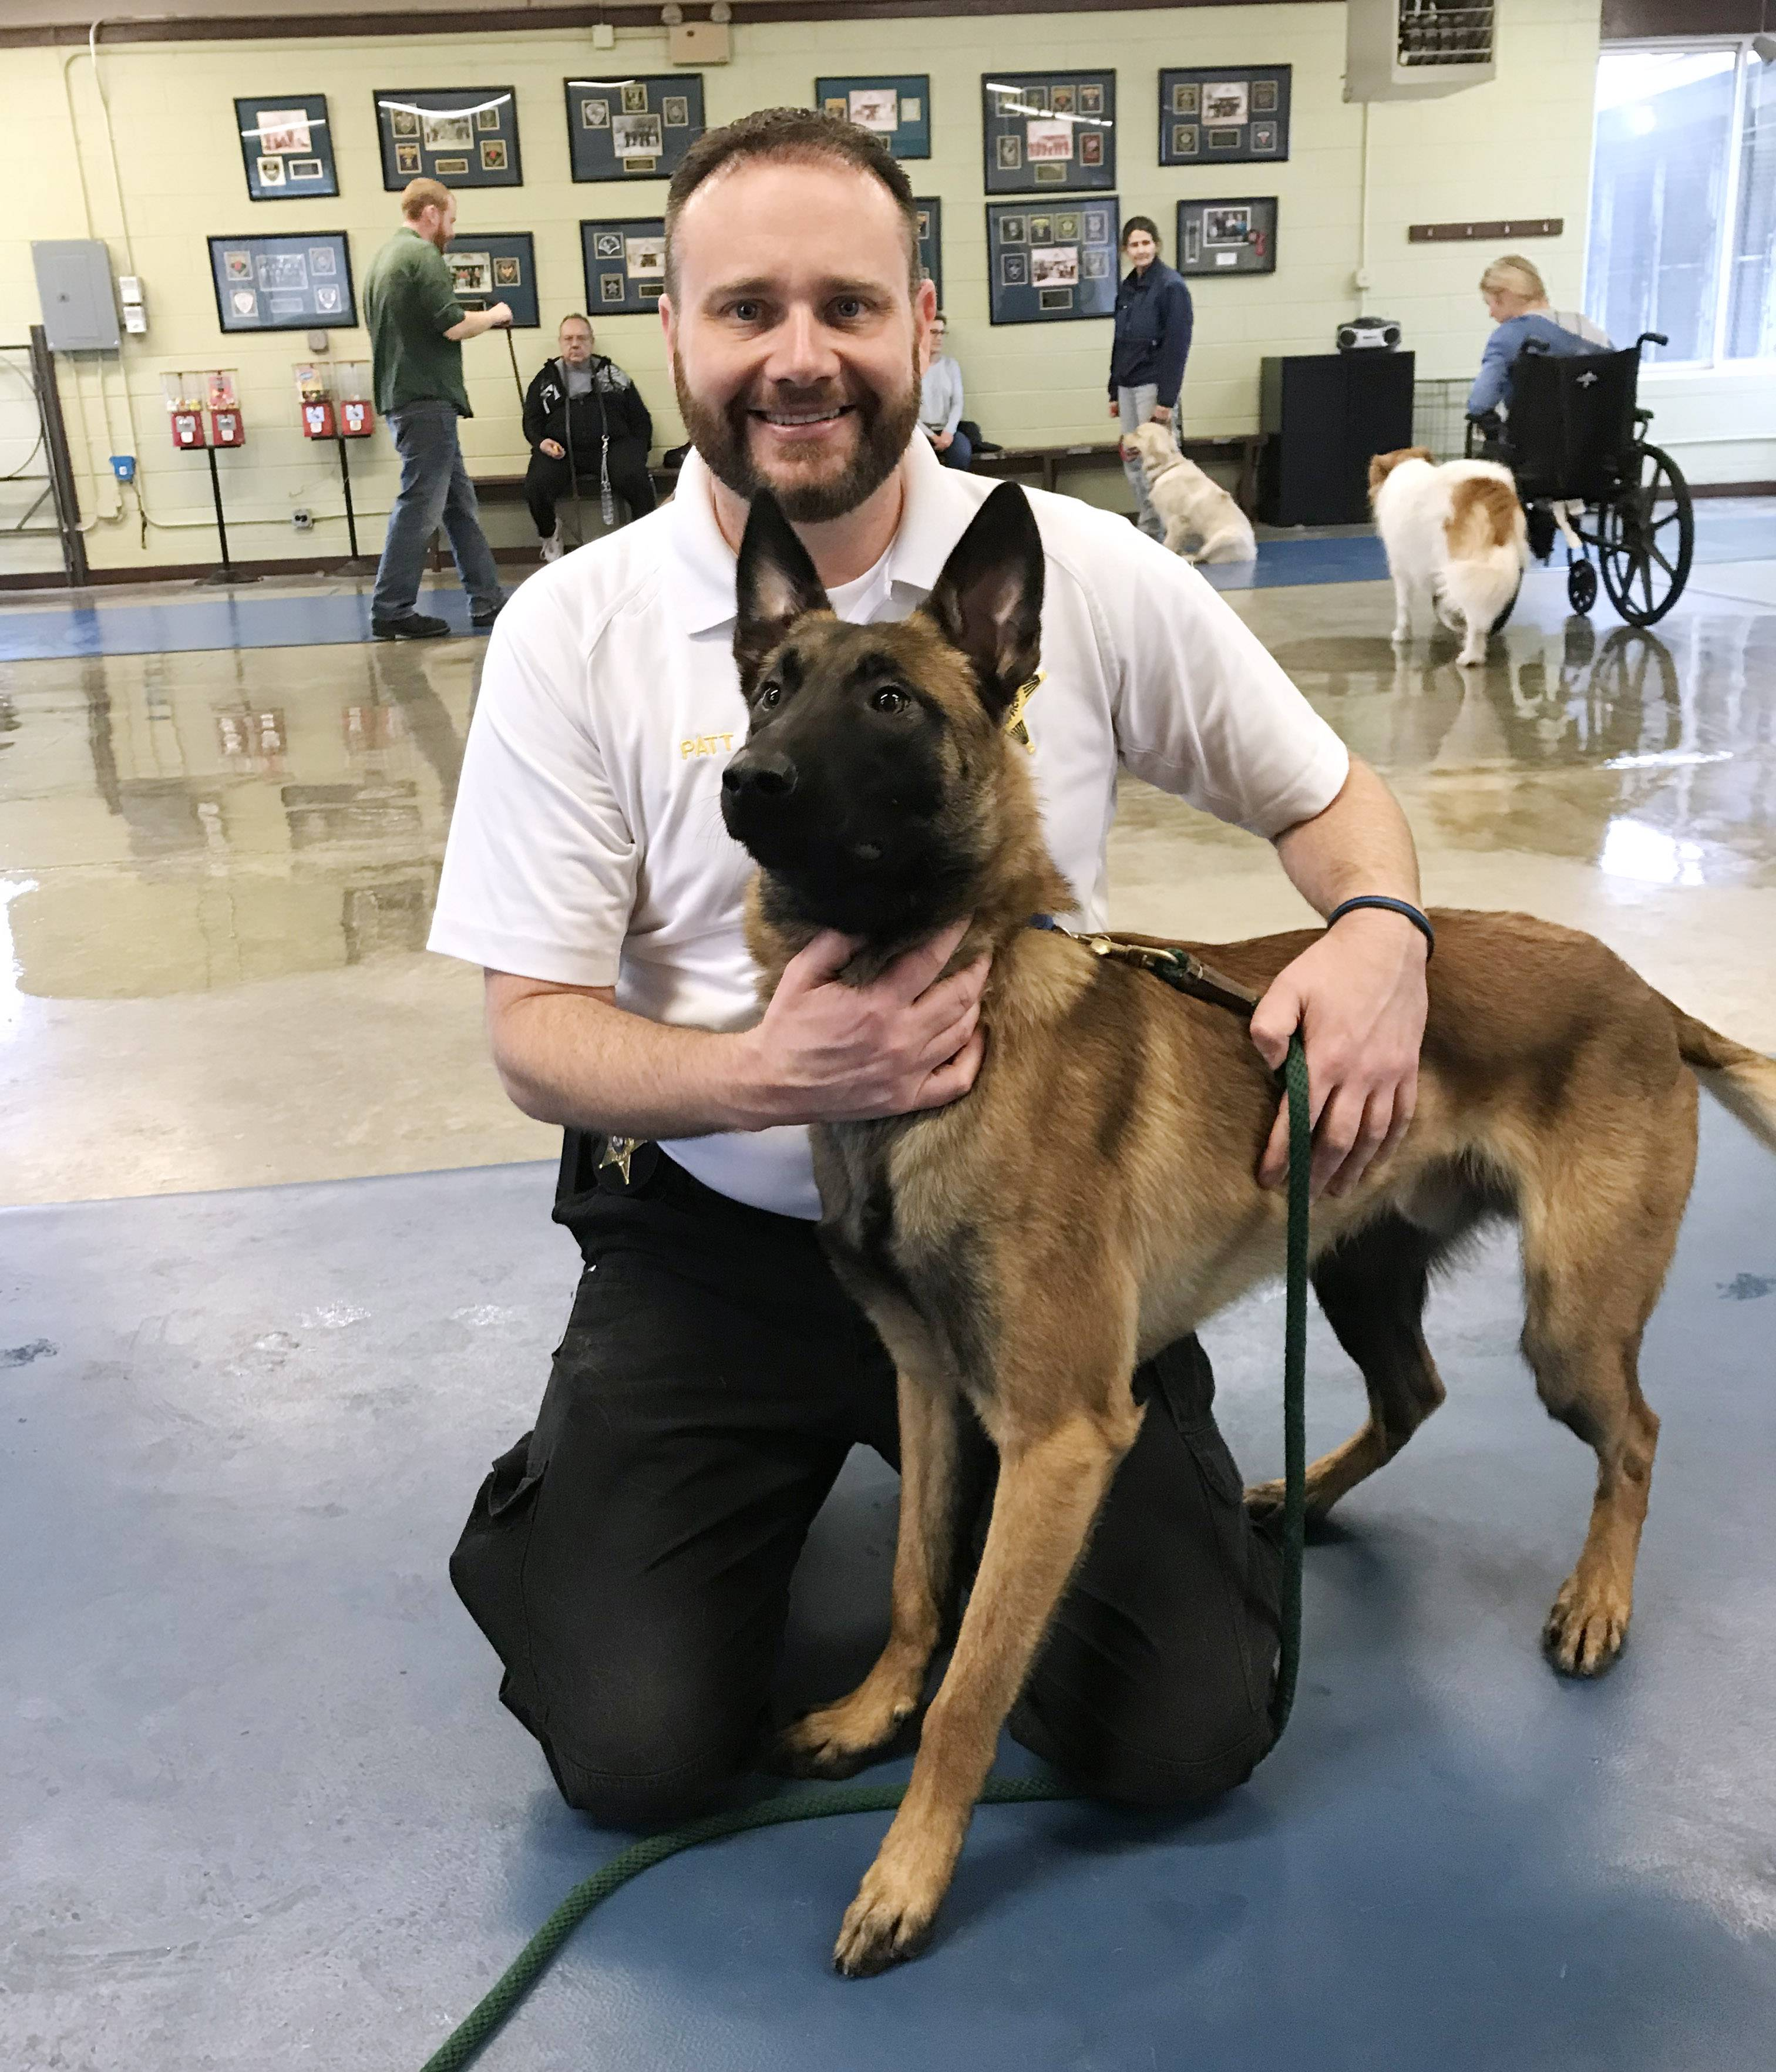 Chief Deputy Coroner Jason Patt with Bones, a one-year-old Belgian Malinois that is being trained as a cadaver dog for the Lake County Coroner's office. Bones also will be a tracking dog and provide grief support to families.